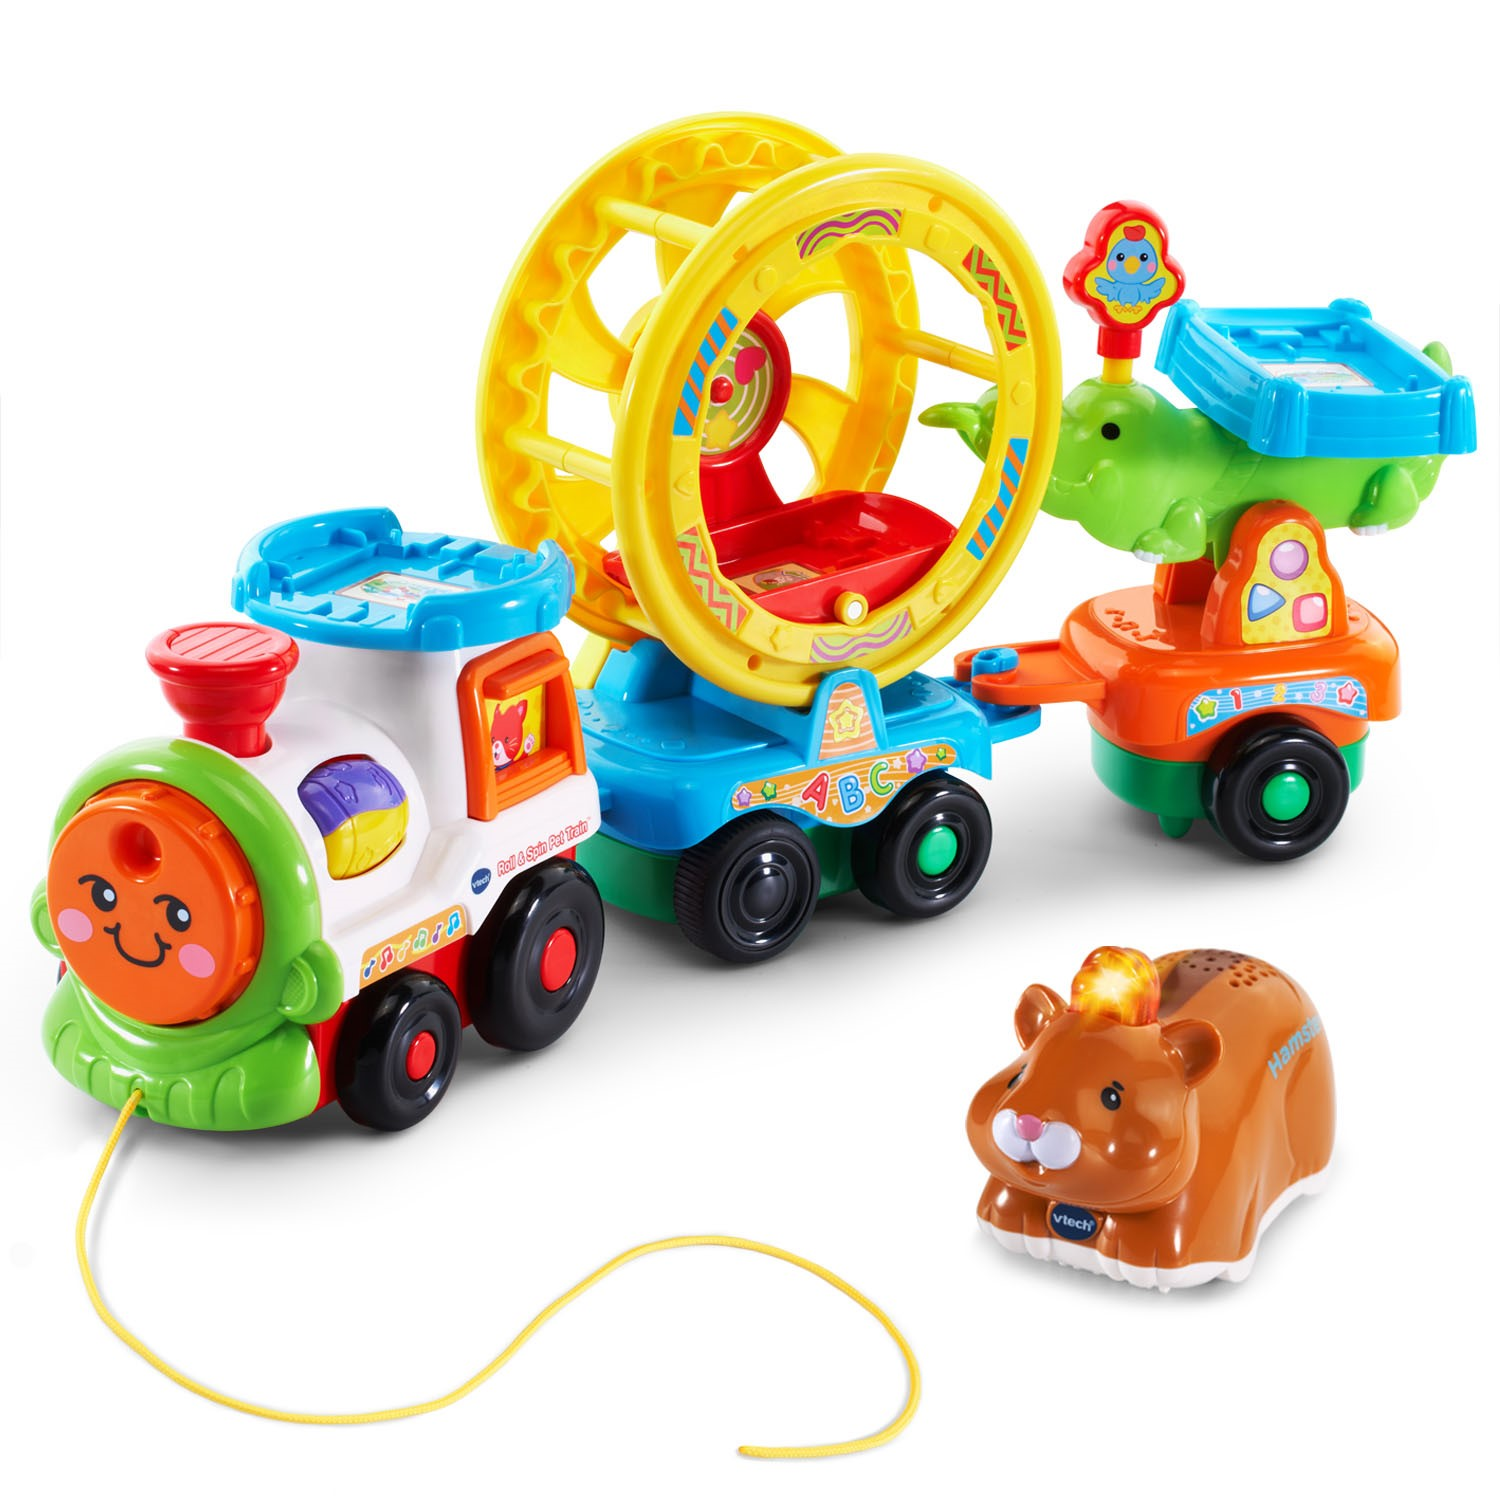 VTech Go! Go! Smart Animals Roll & Spin Pet Train by VTech